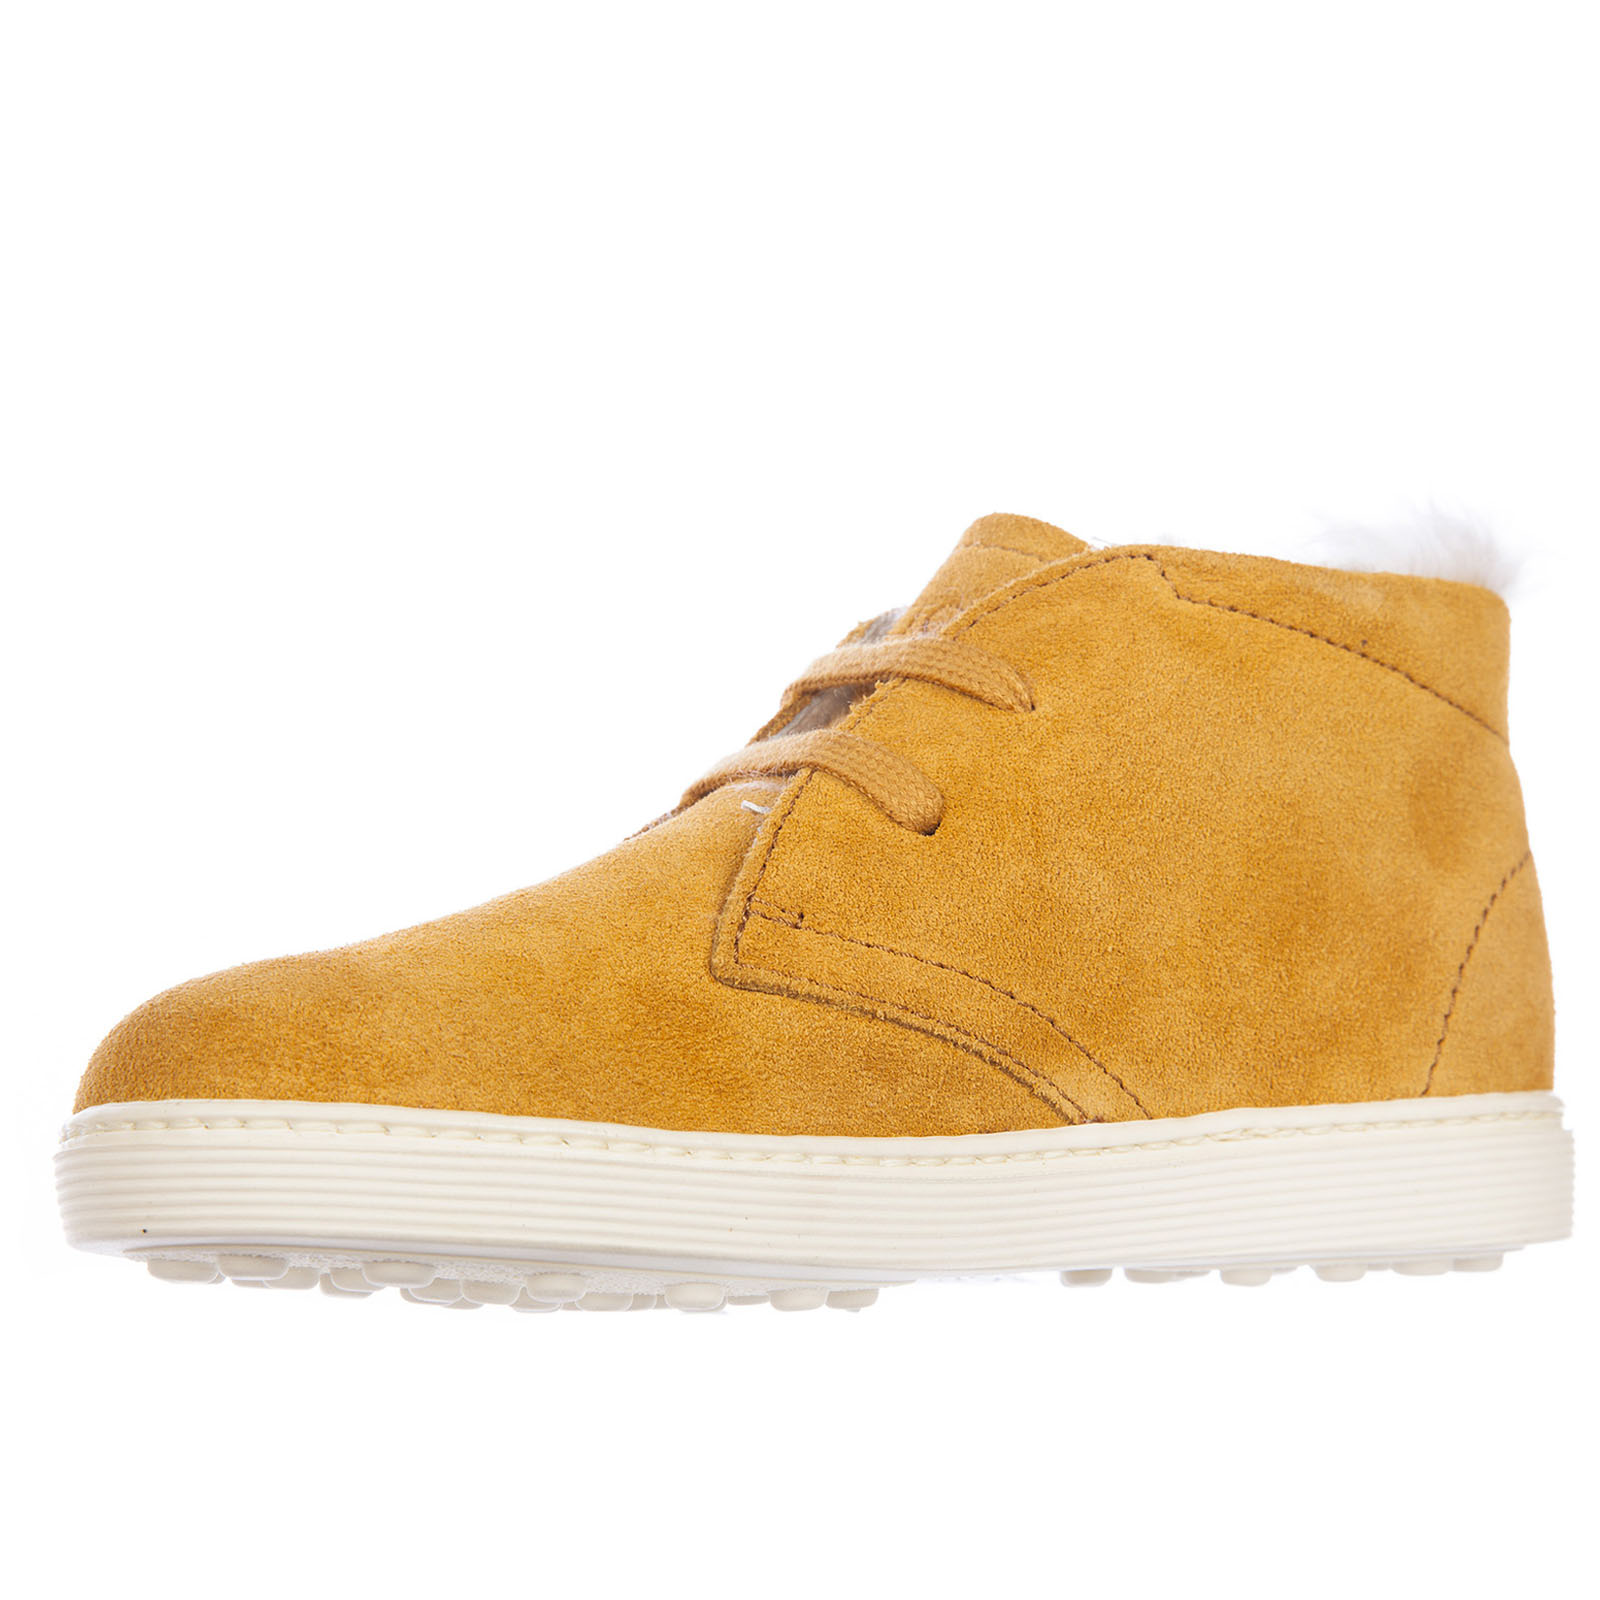 Boys suede leather child desert boots ankle boots sport cassetta